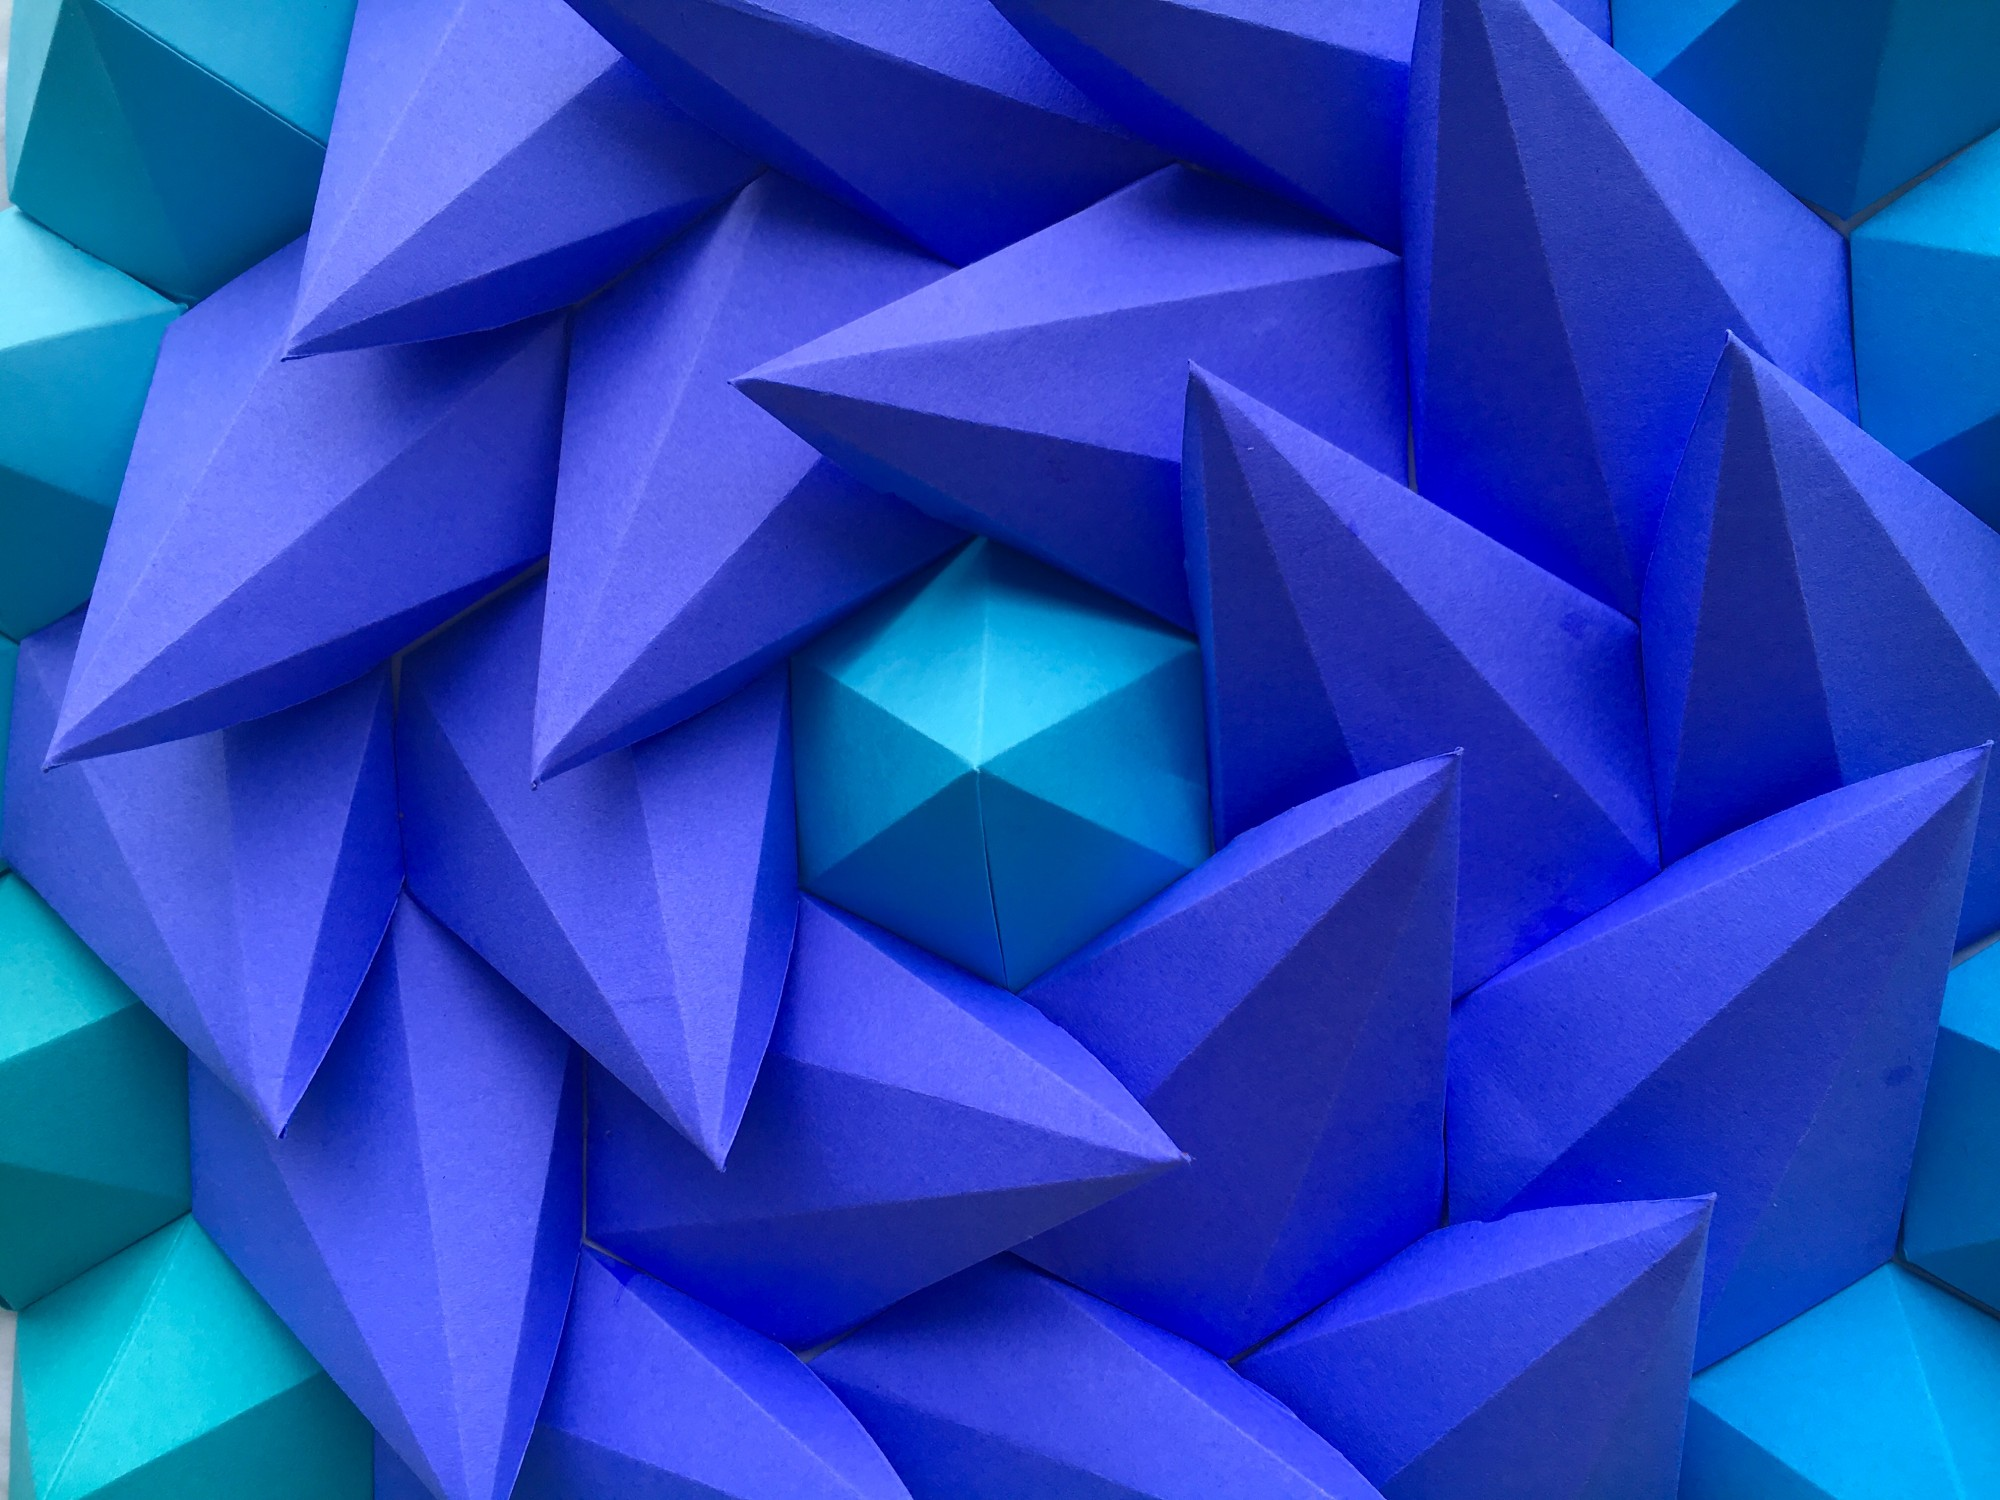 Mathematical-Inspired-3D-Paper-Kaleidoscope-Tessellations-Brandon-Clark-Strictlypaper10